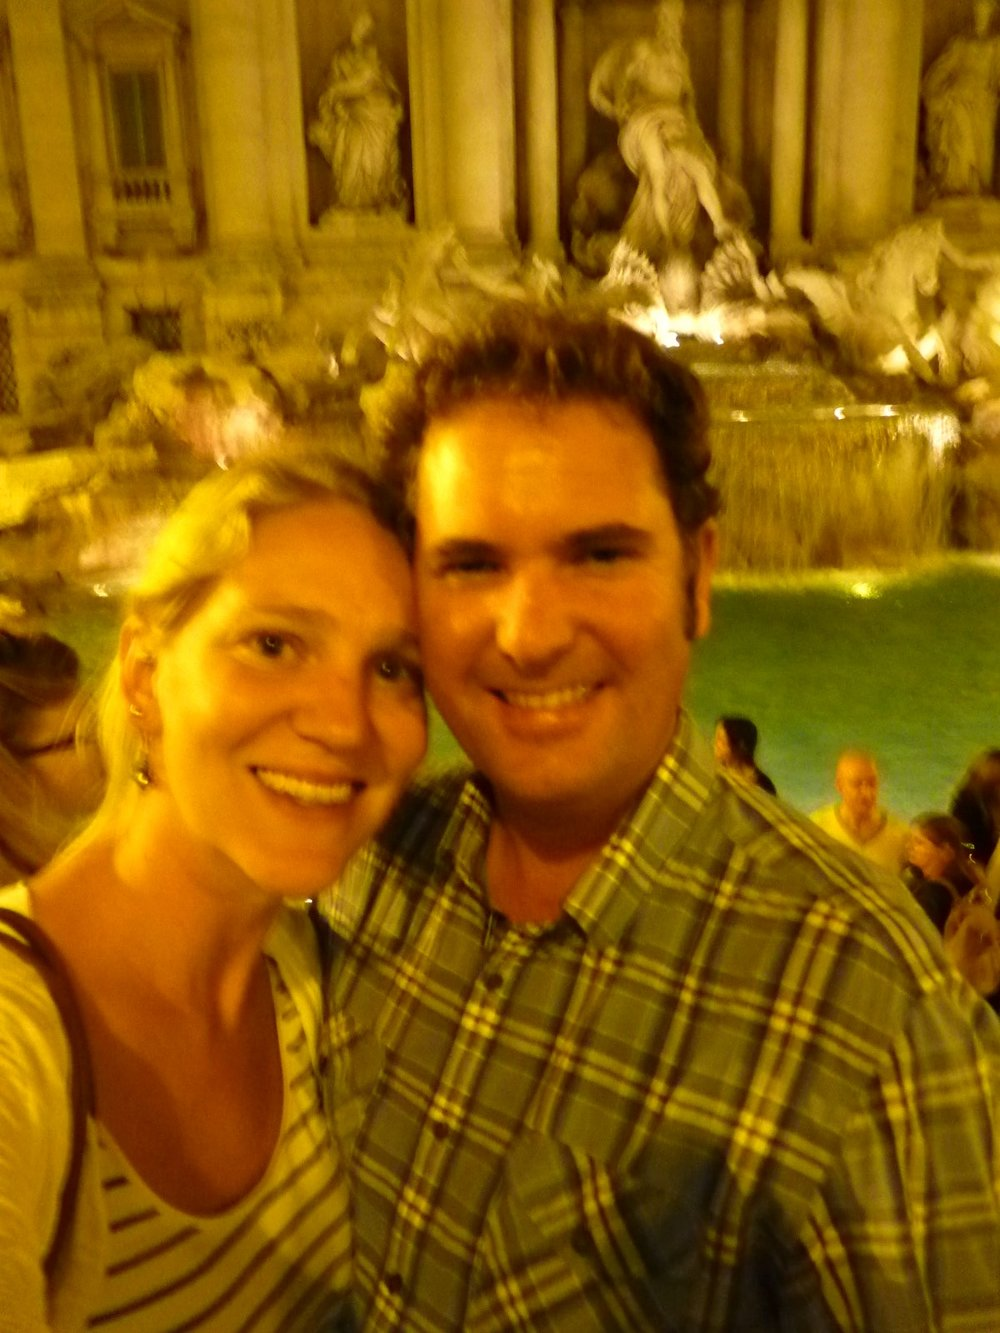 Us-at-Trevi-Fountain.jpg